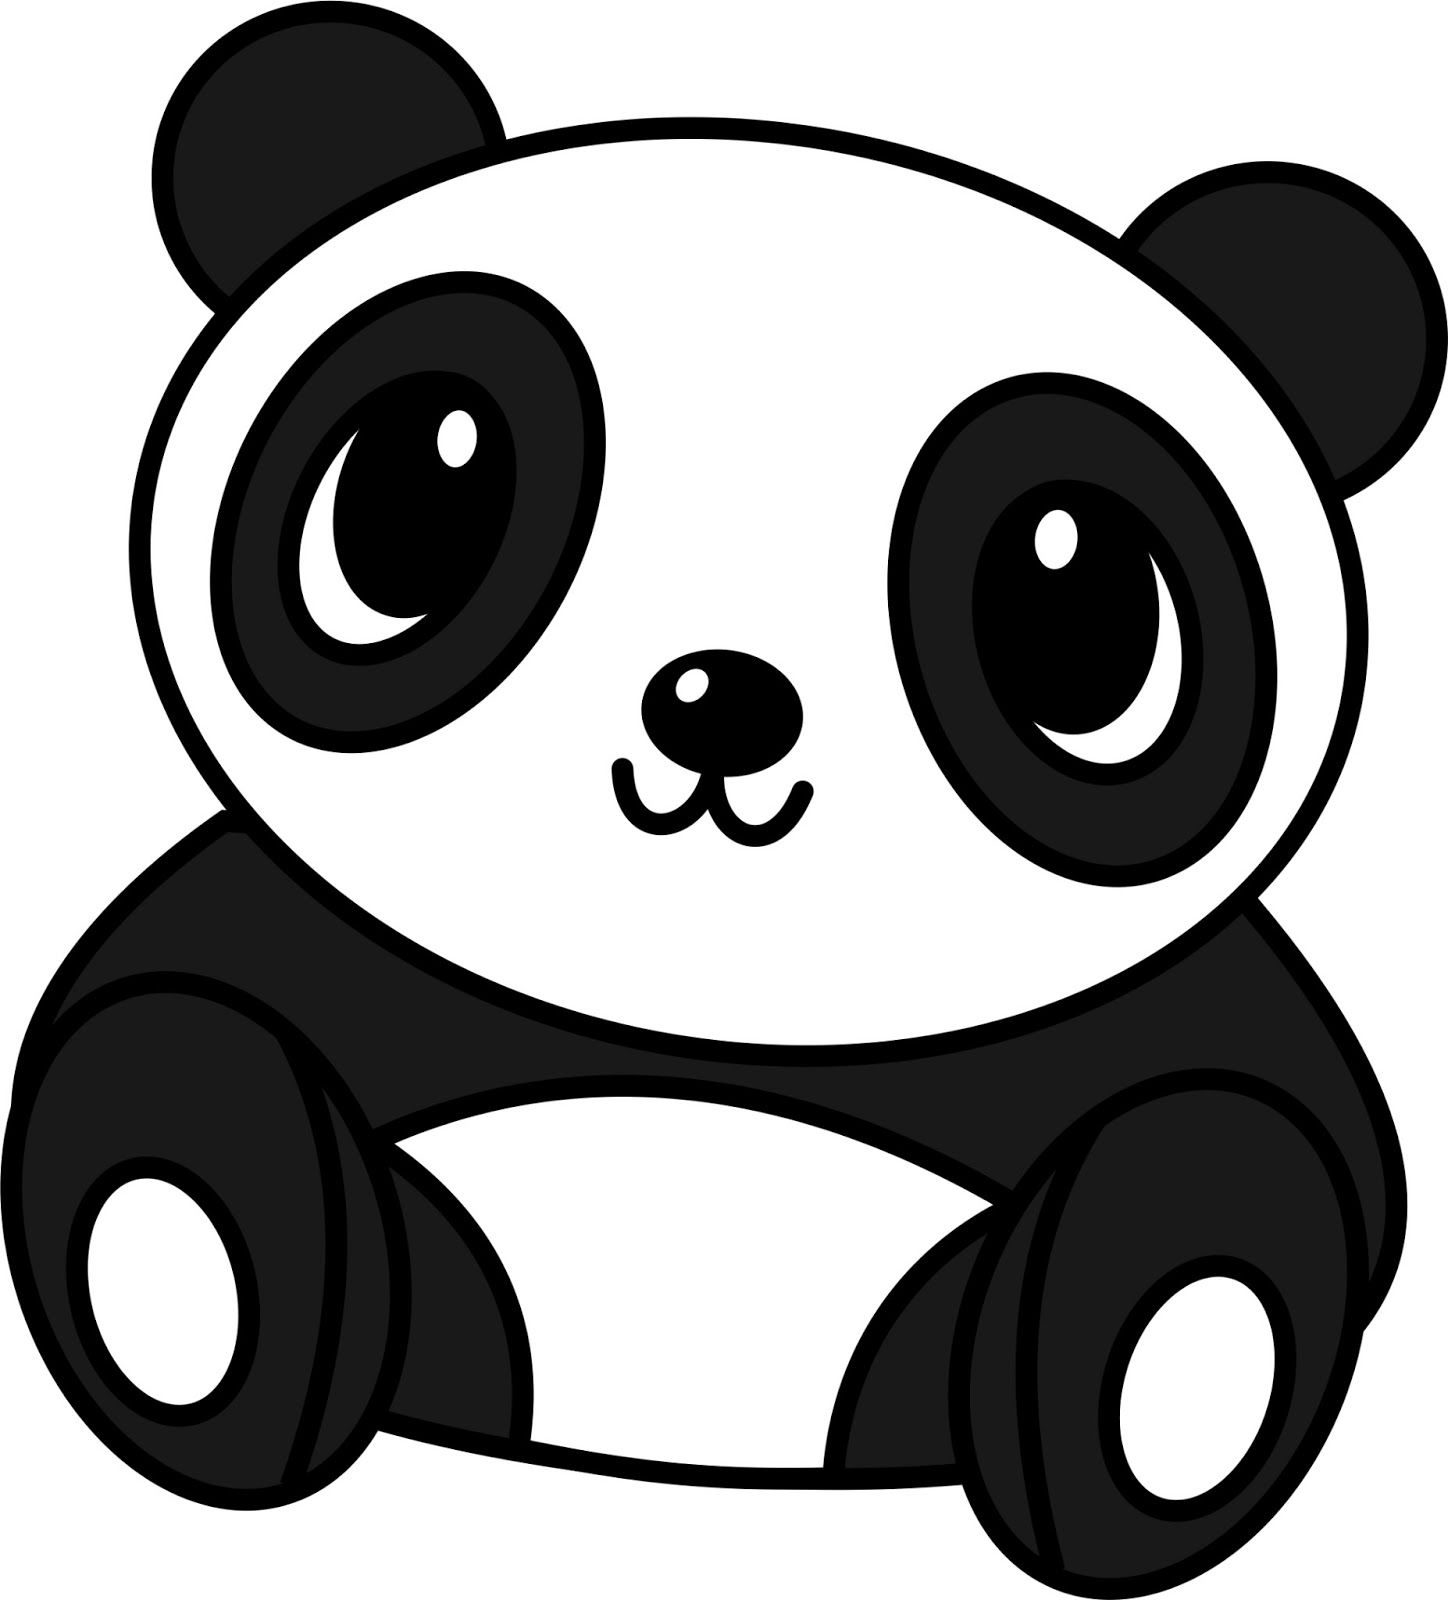 Cute Panda Drawings | ... panda drawing i made it using corel draw ...